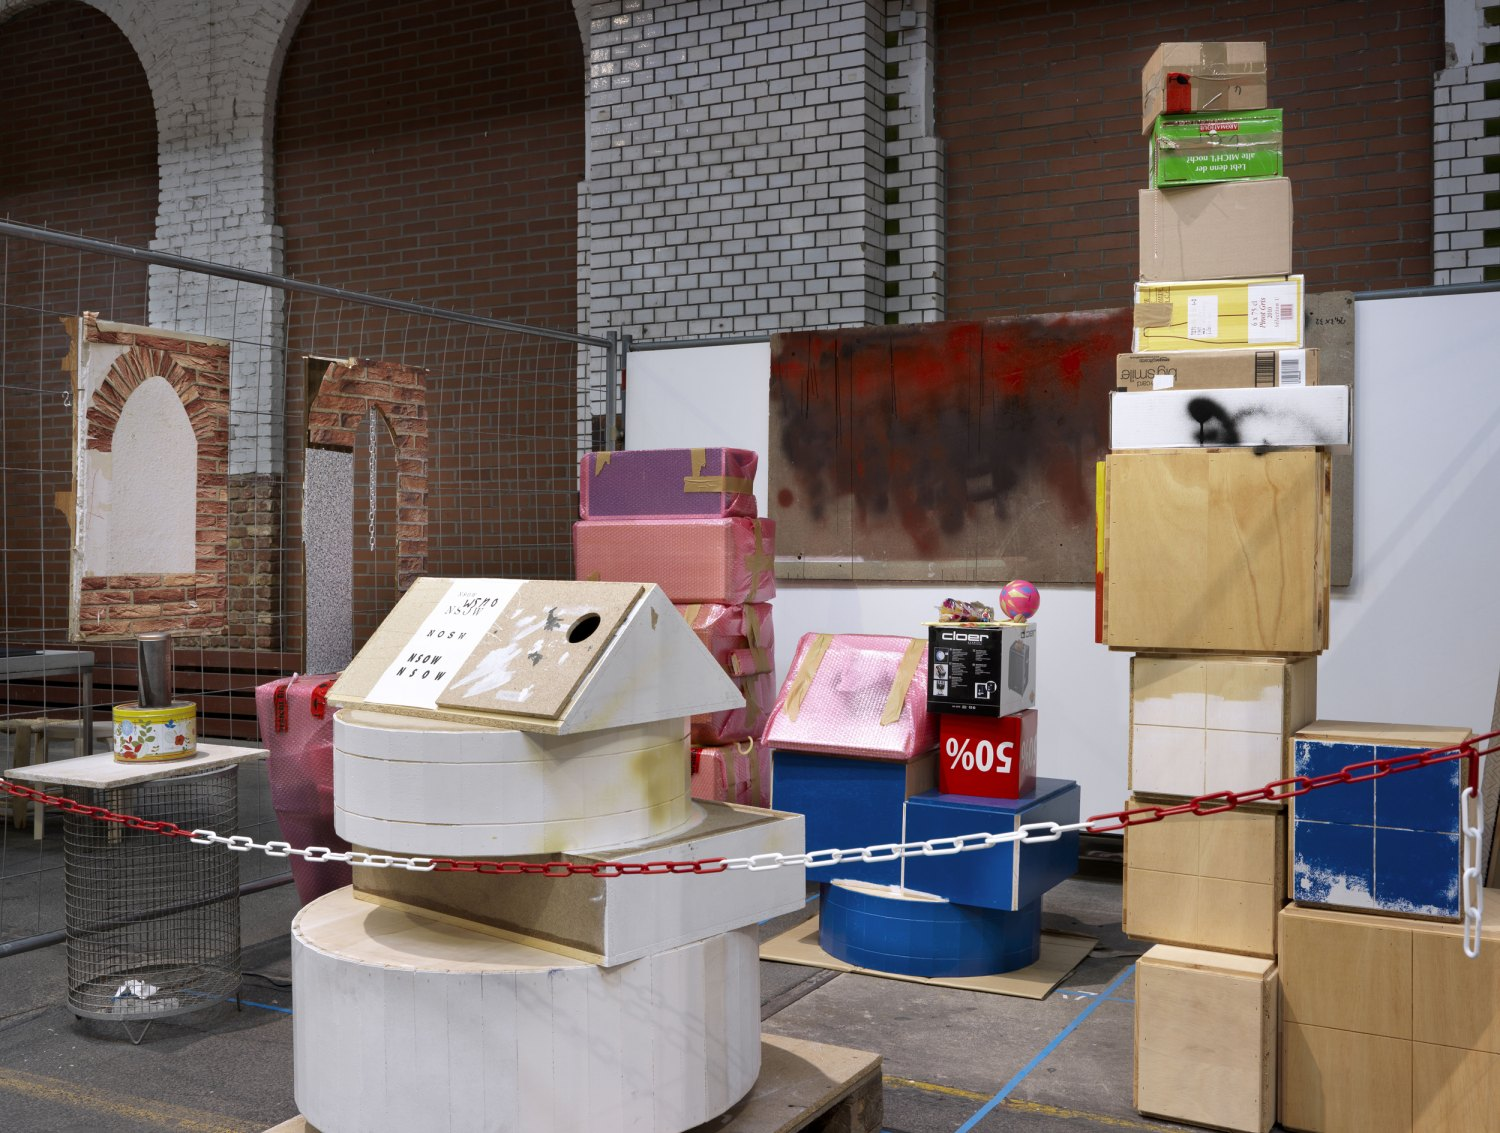 Manfred Pernice   Untitled, 2012    Wood, bubble wrap, site fence, cardboard, plywood, work disks, security cordon, dimensions variabel